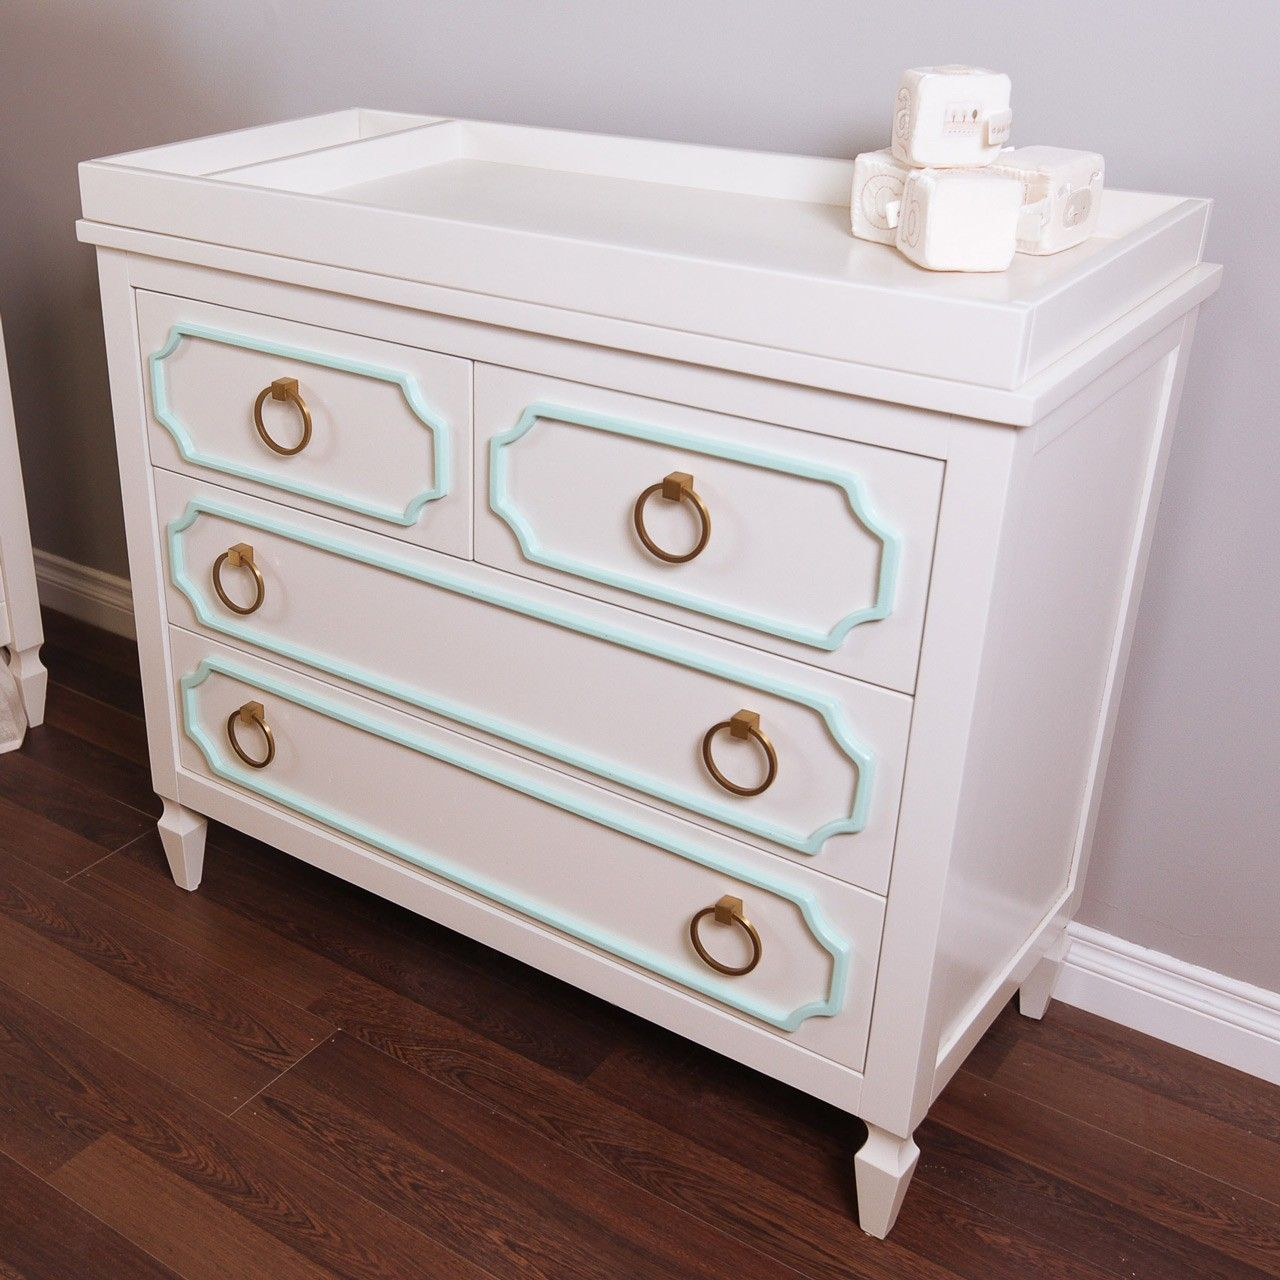 Buy Your Beverly 4 Drawer Dresser By Newport Cottages Here. The Beverly 4  Drawer Dresser Is The Perfect Piece Of Furniture For Your Little One.